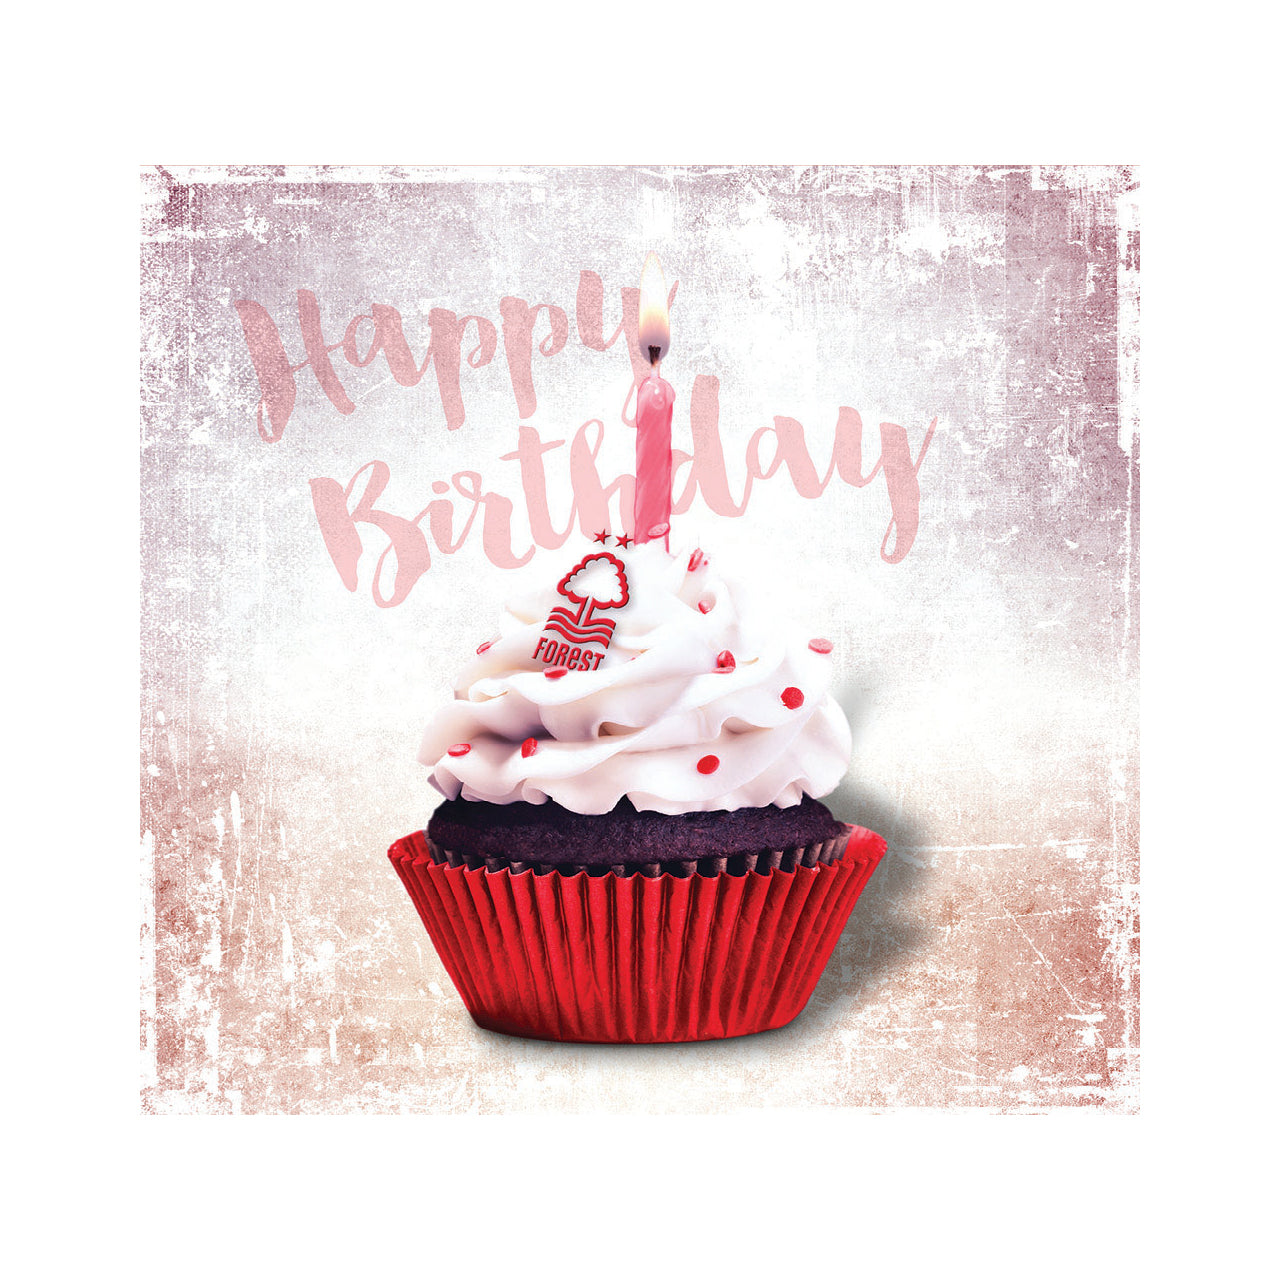 Remarkable Nffc Happy Birthday Cupcake Card Nottingham Forest Fc Funny Birthday Cards Online Overcheapnameinfo